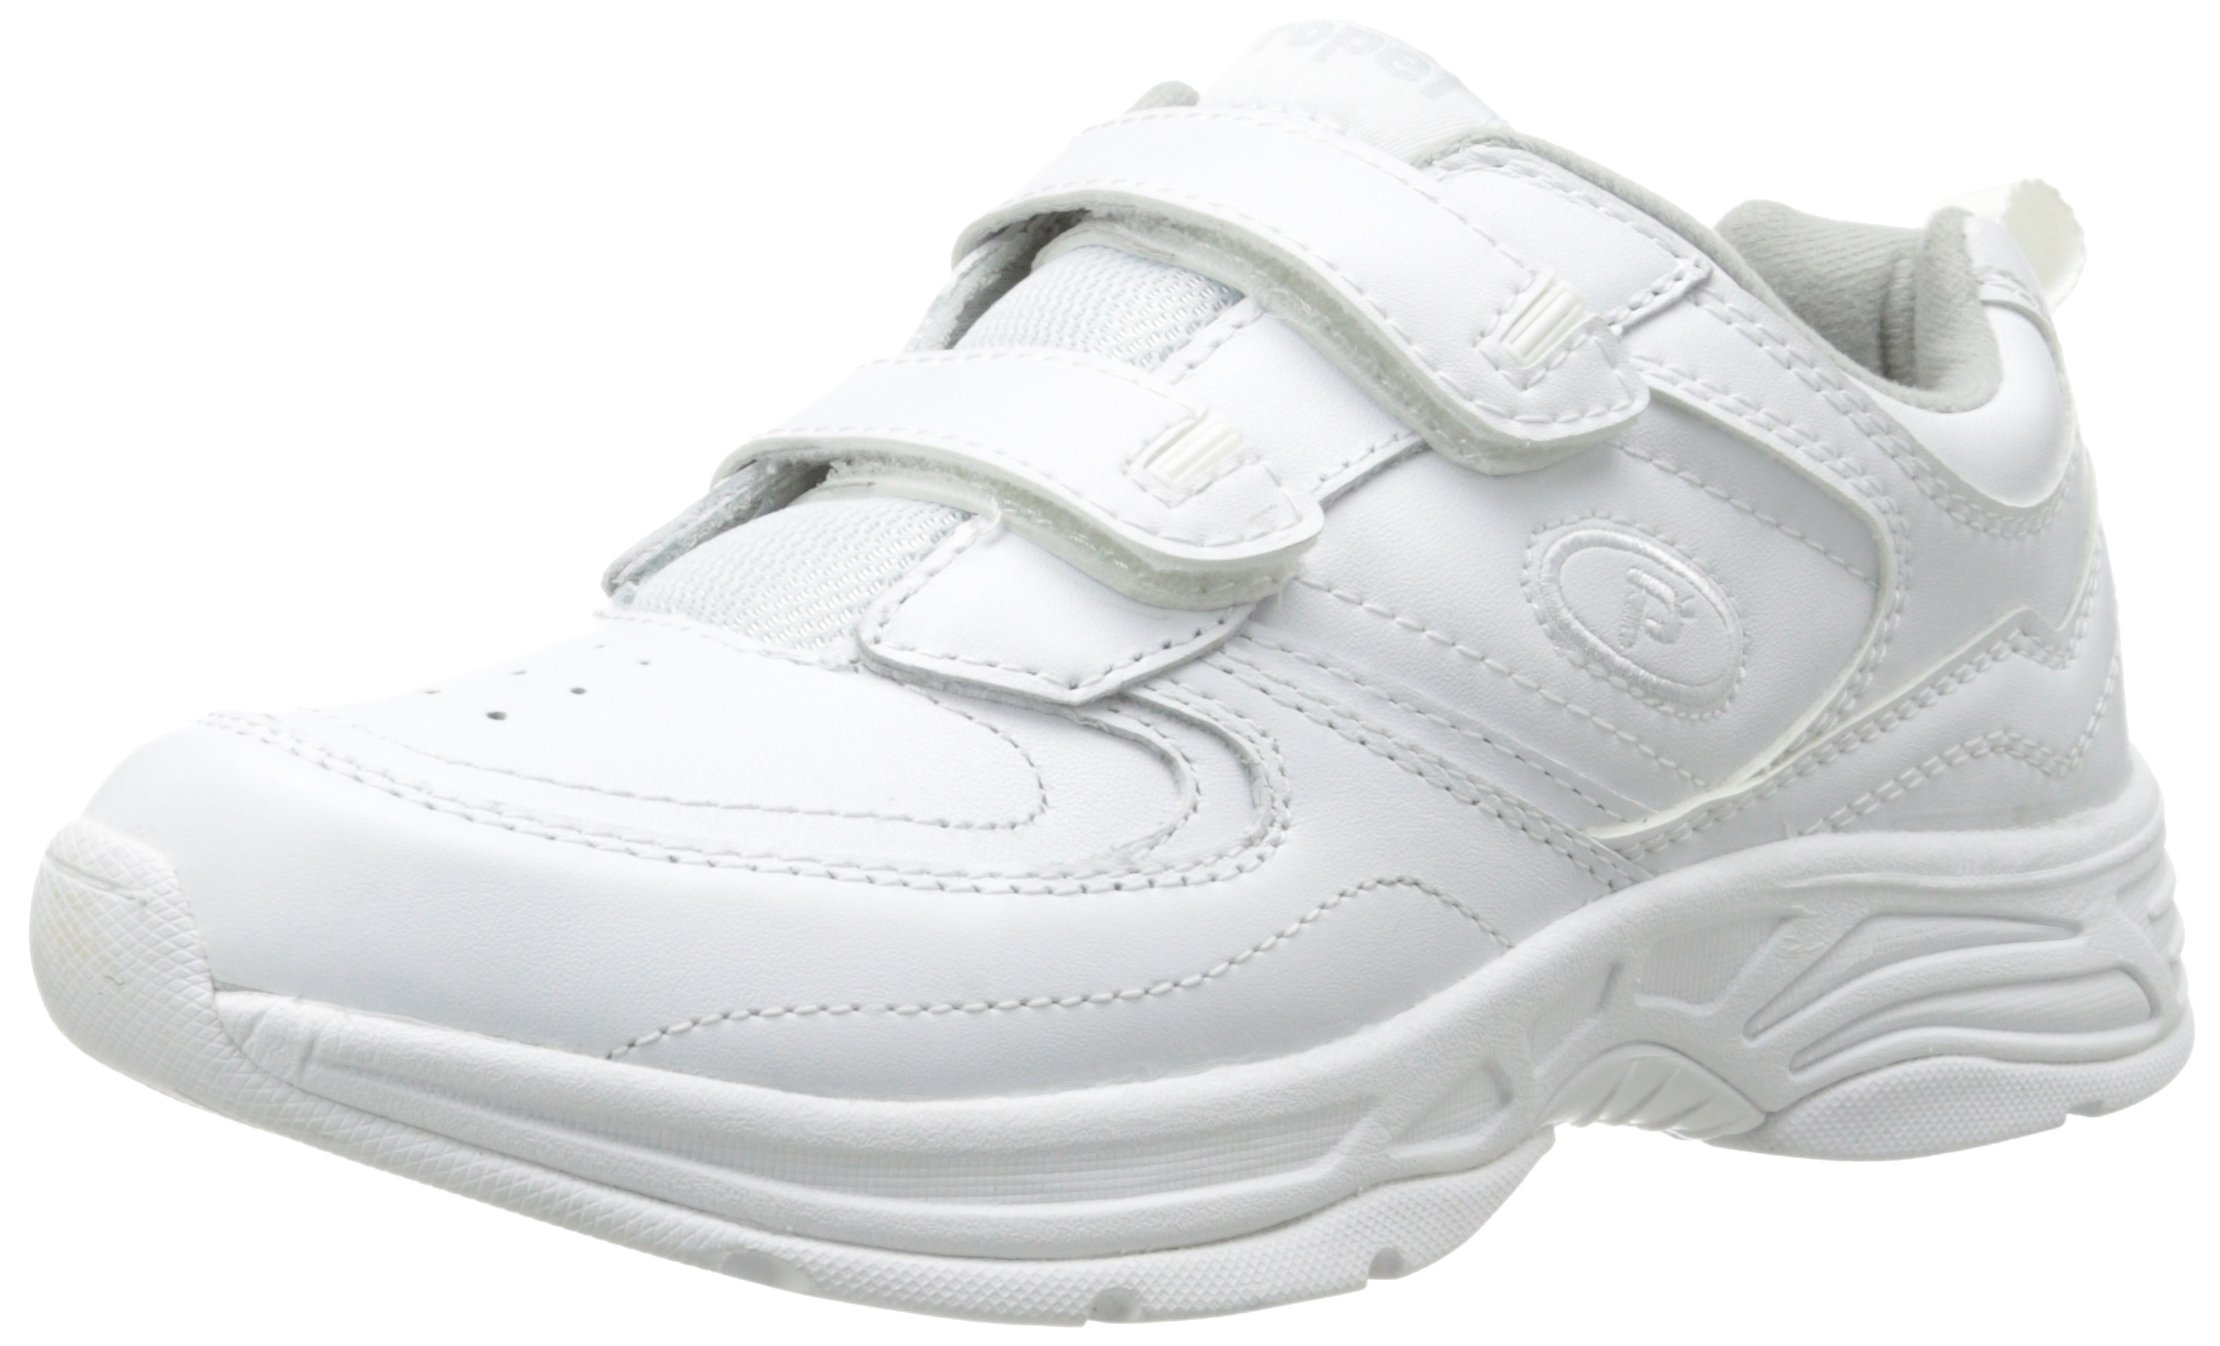 Propet Women's Eden Strap Walking Shoe,White,7 N US